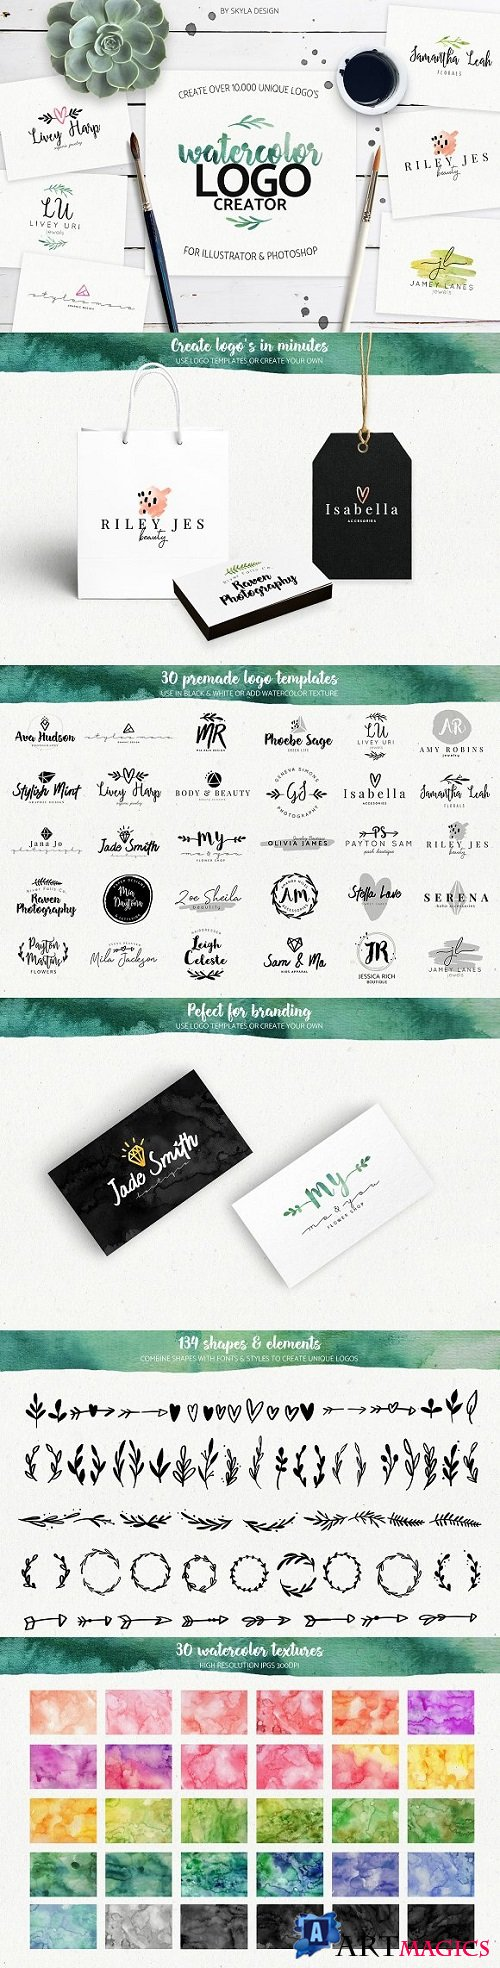 Premade Watercolor Logo Creator Kit 1874121